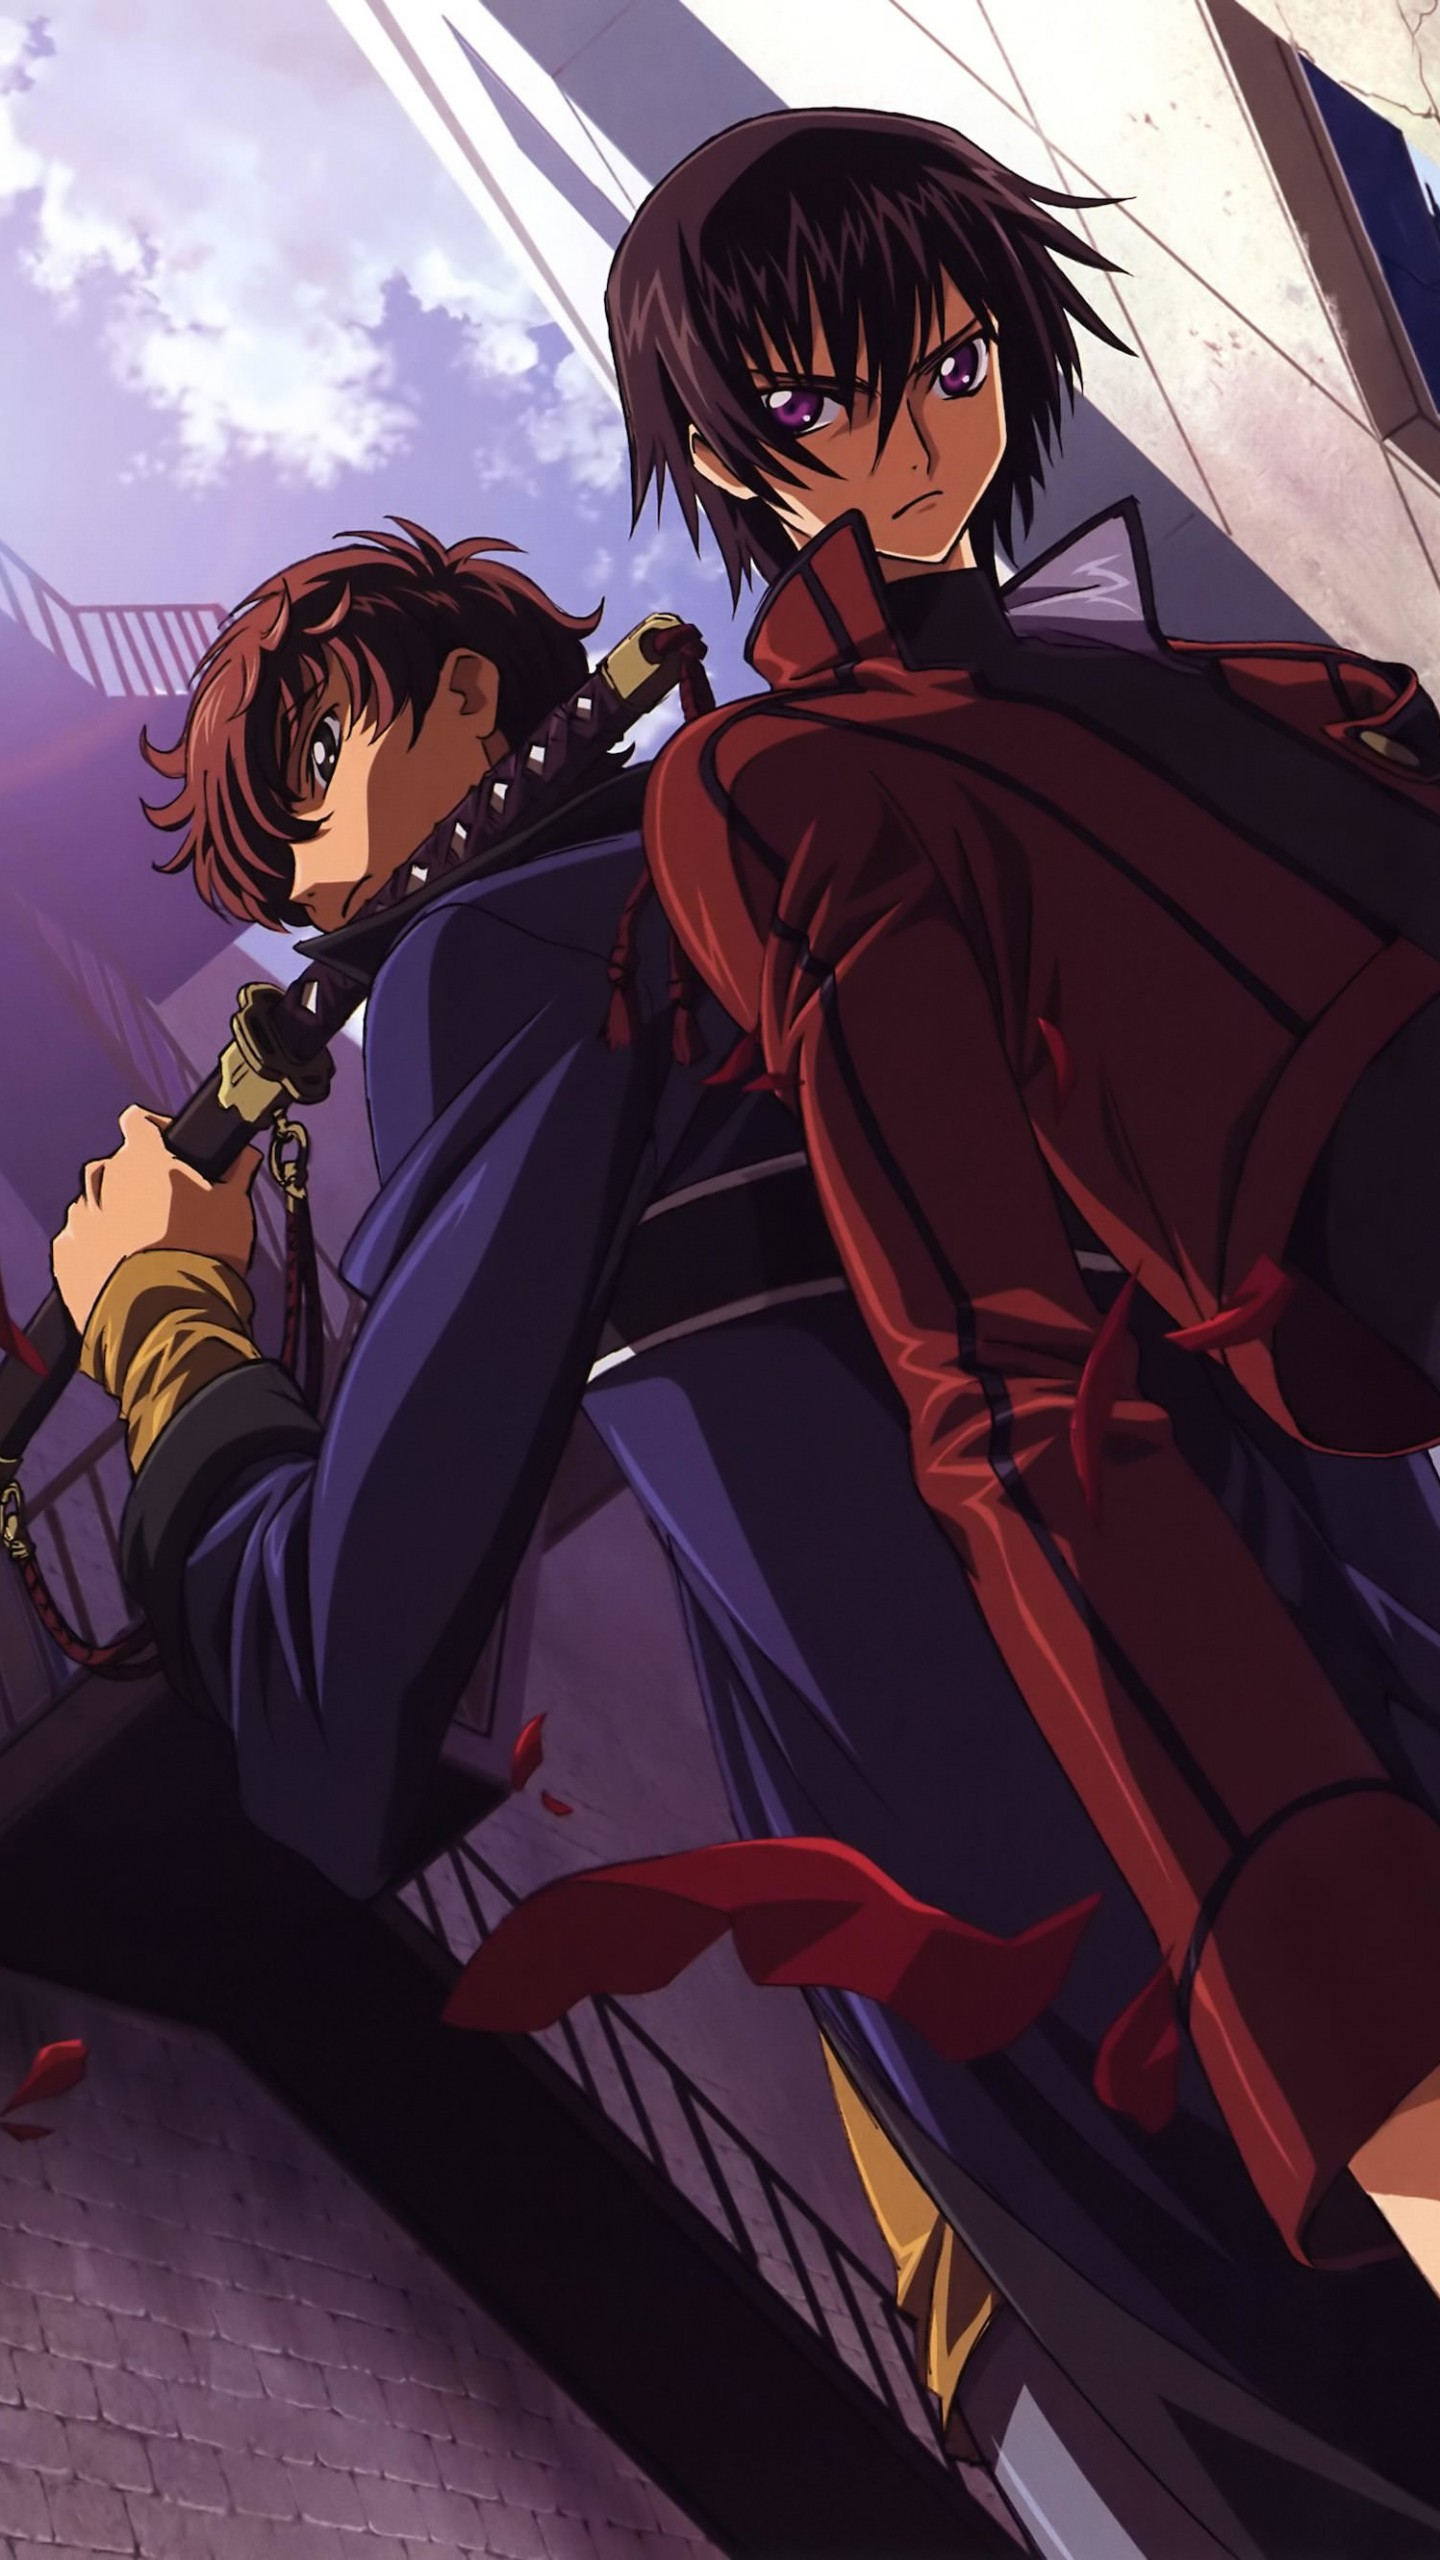 Code Geass Wallpaper for LG G3